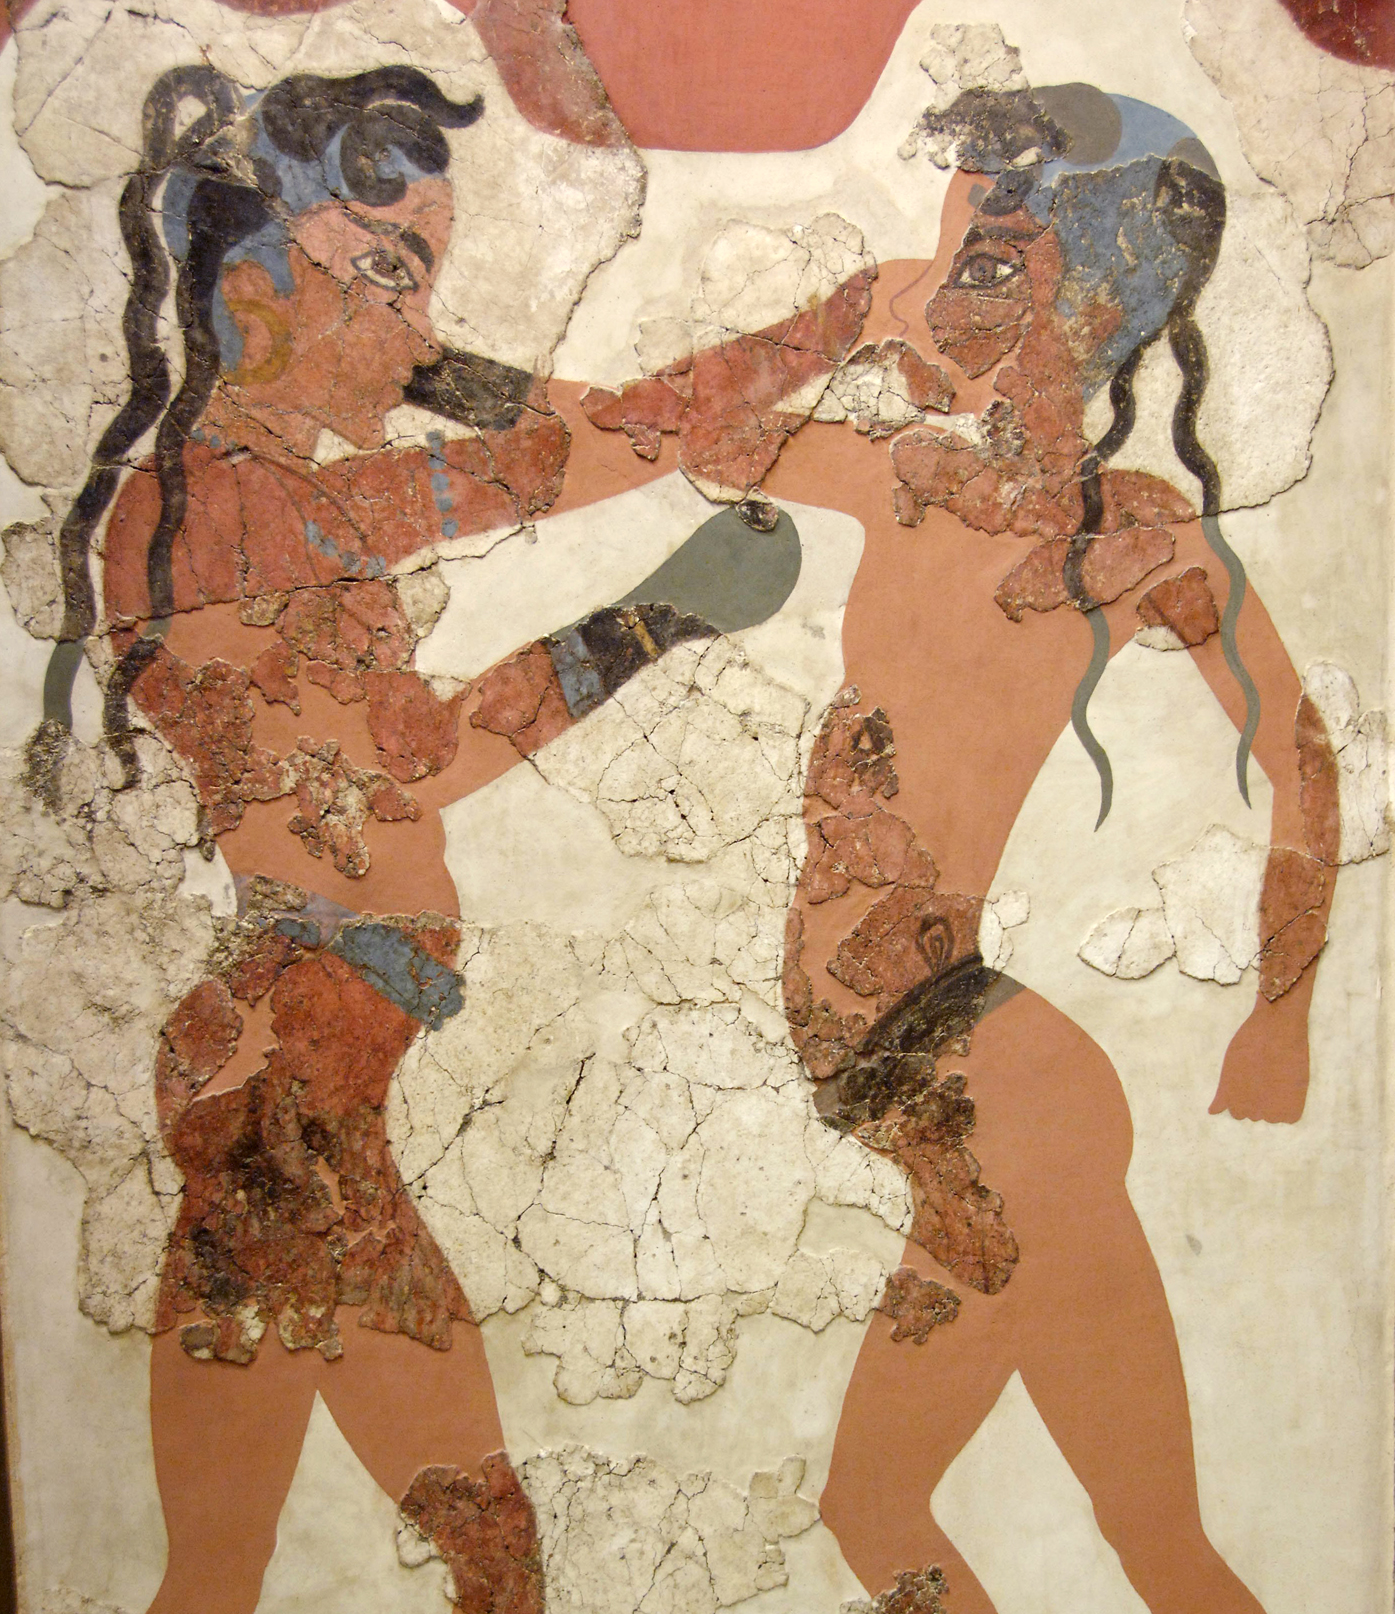 Ancient Greek fresco showing two adolescent boys boxing.